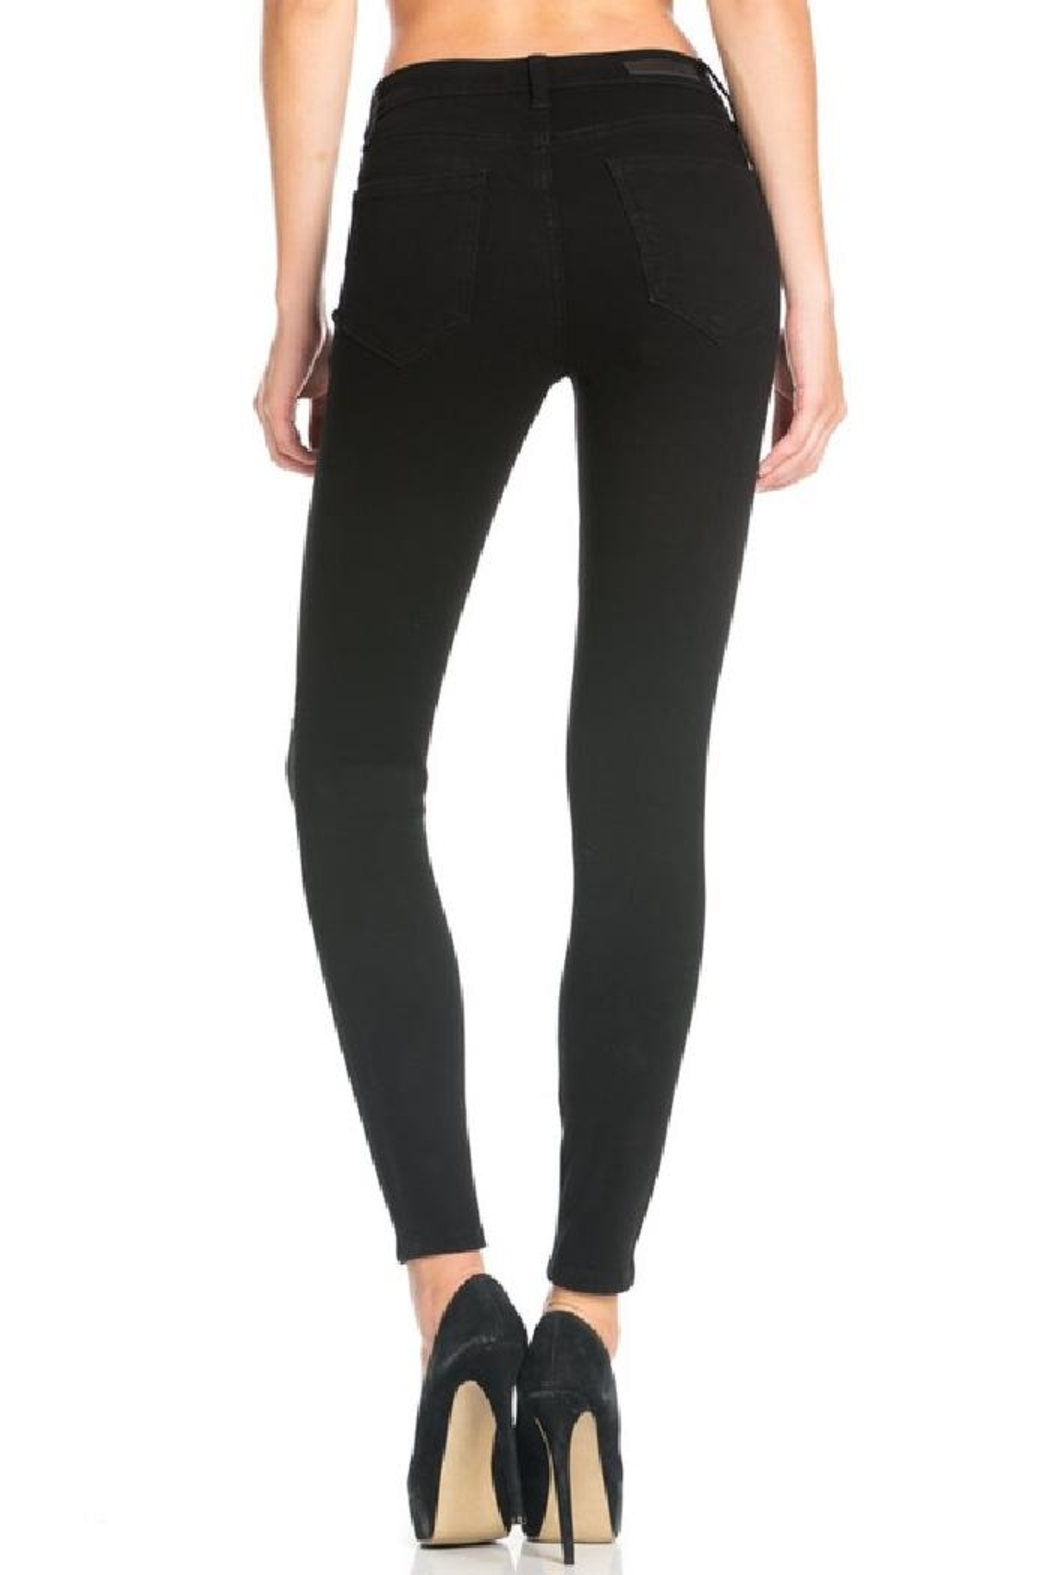 Cello Jeans Destroyed Black Skinny Jeans - Side Cropped Image